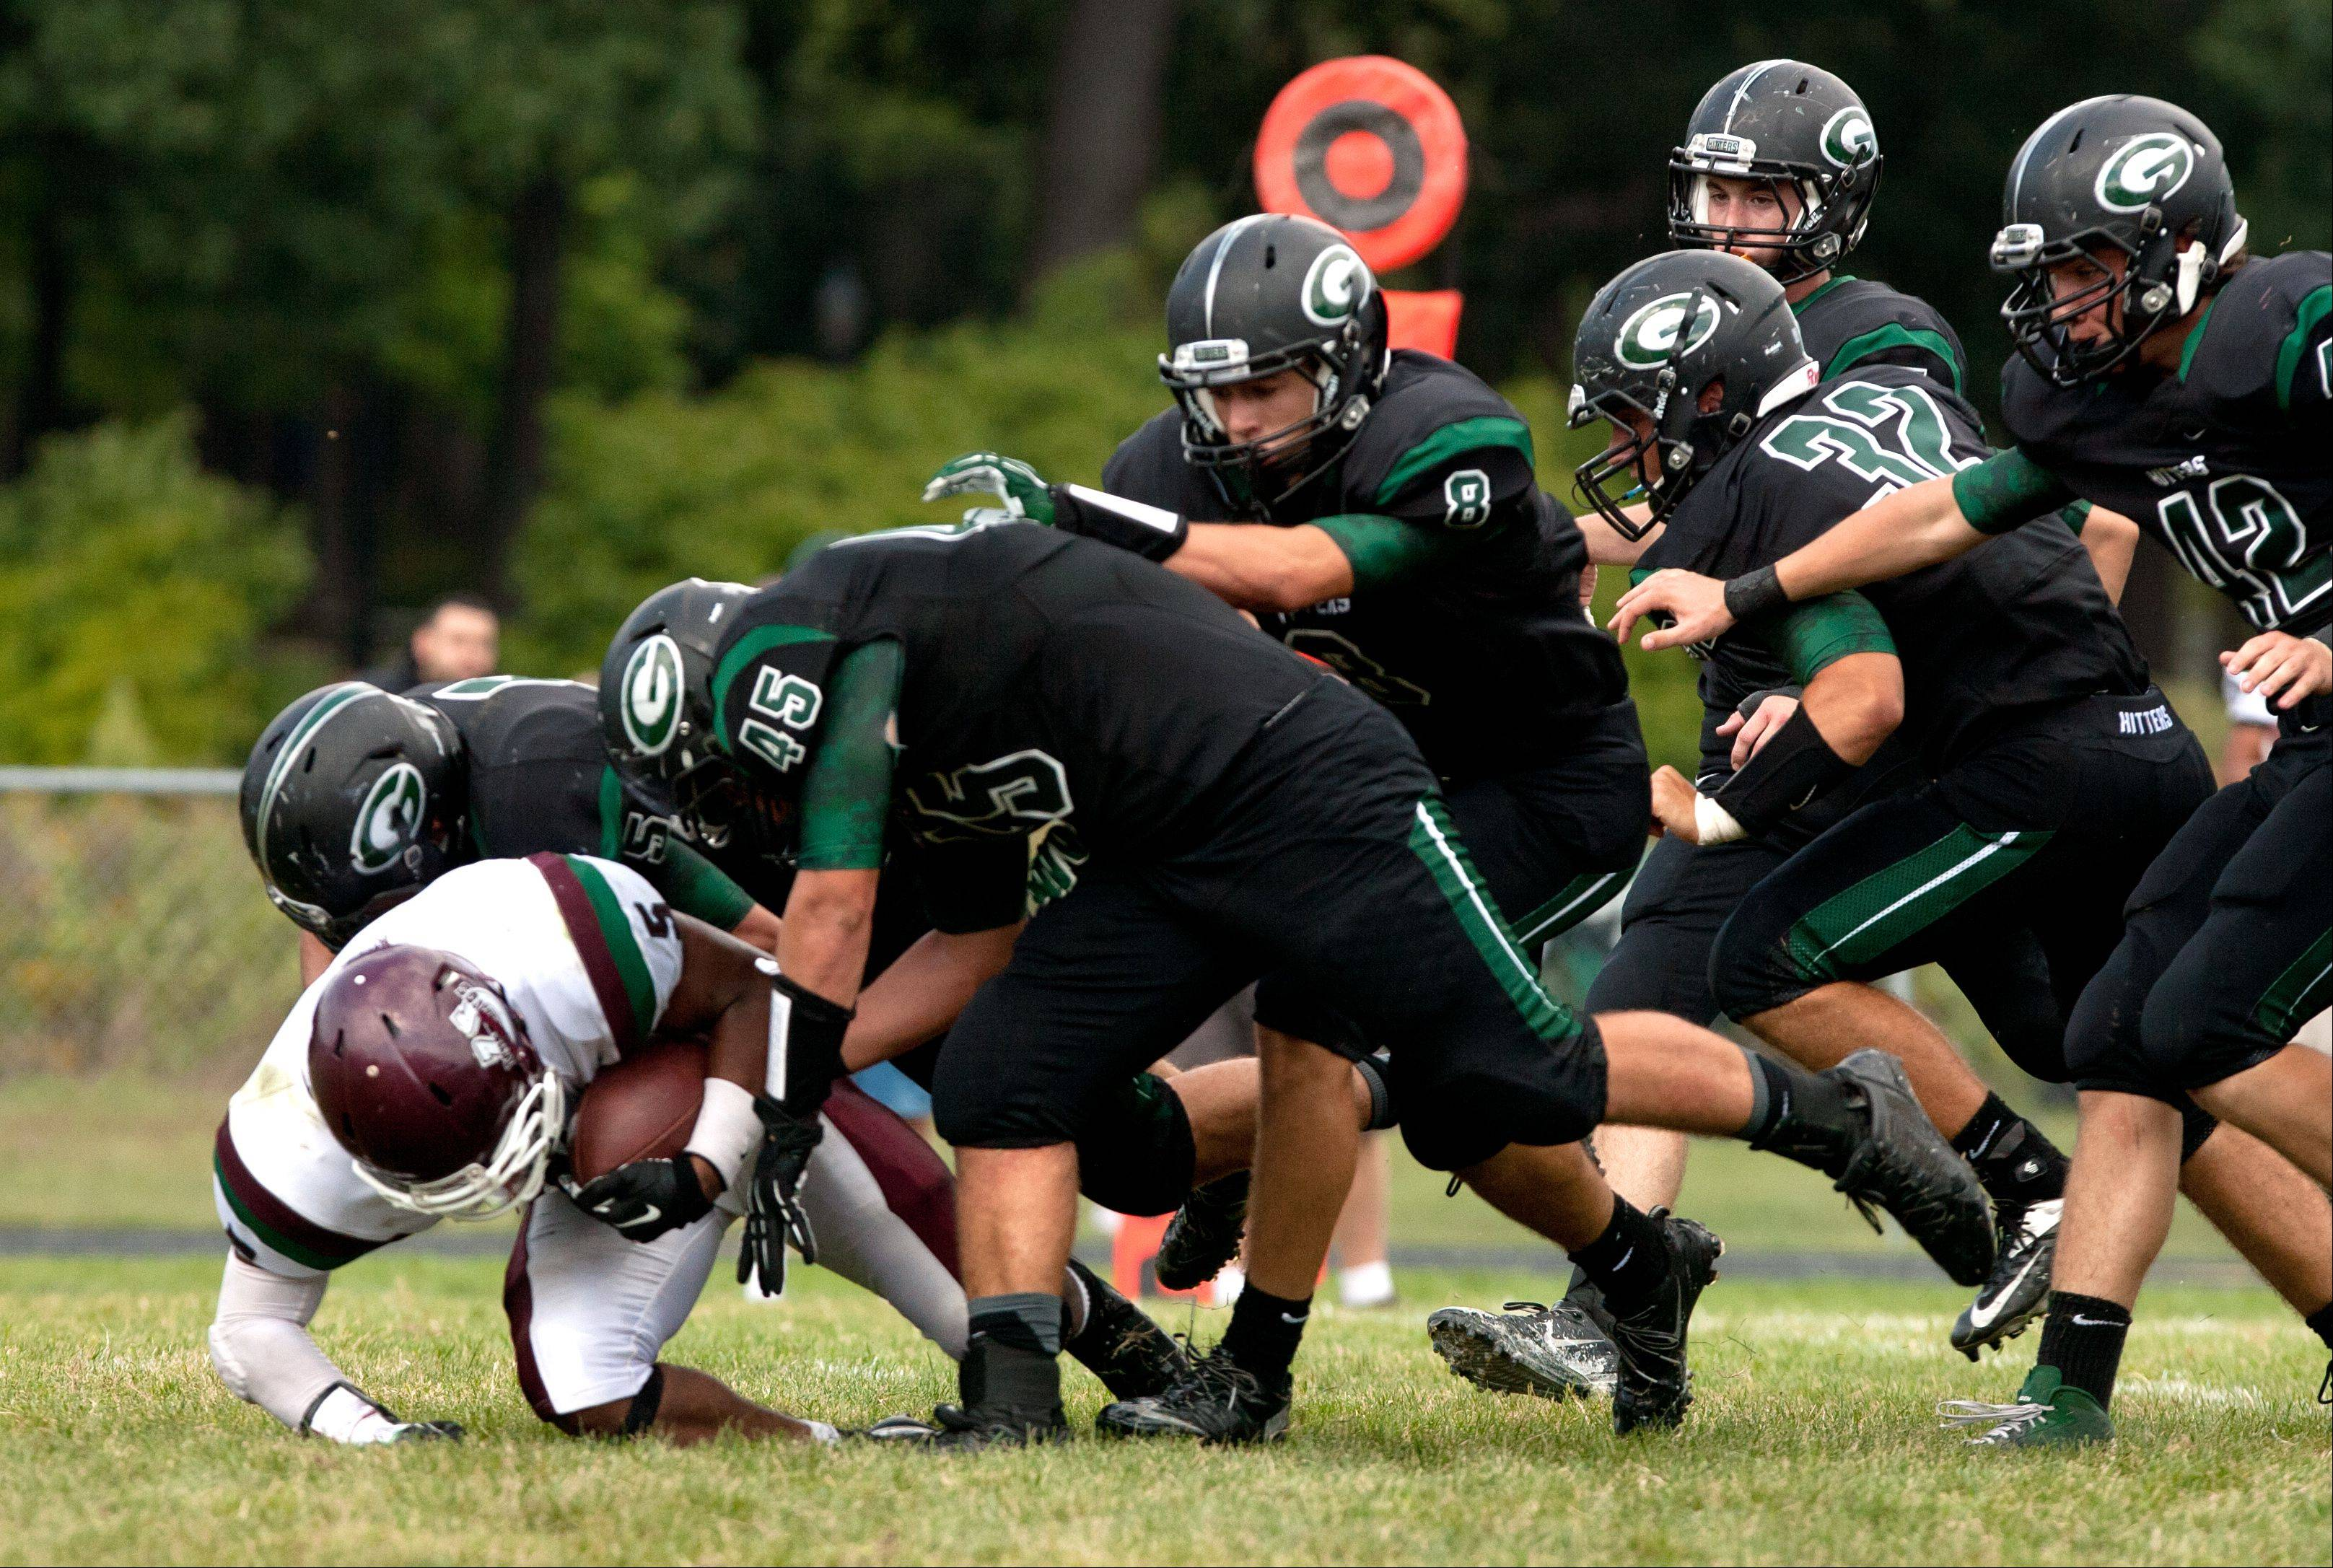 Glenbard West's defense swarms Morton's M. Hester, as the Hilltoppers build a 41-0 halftime lead.